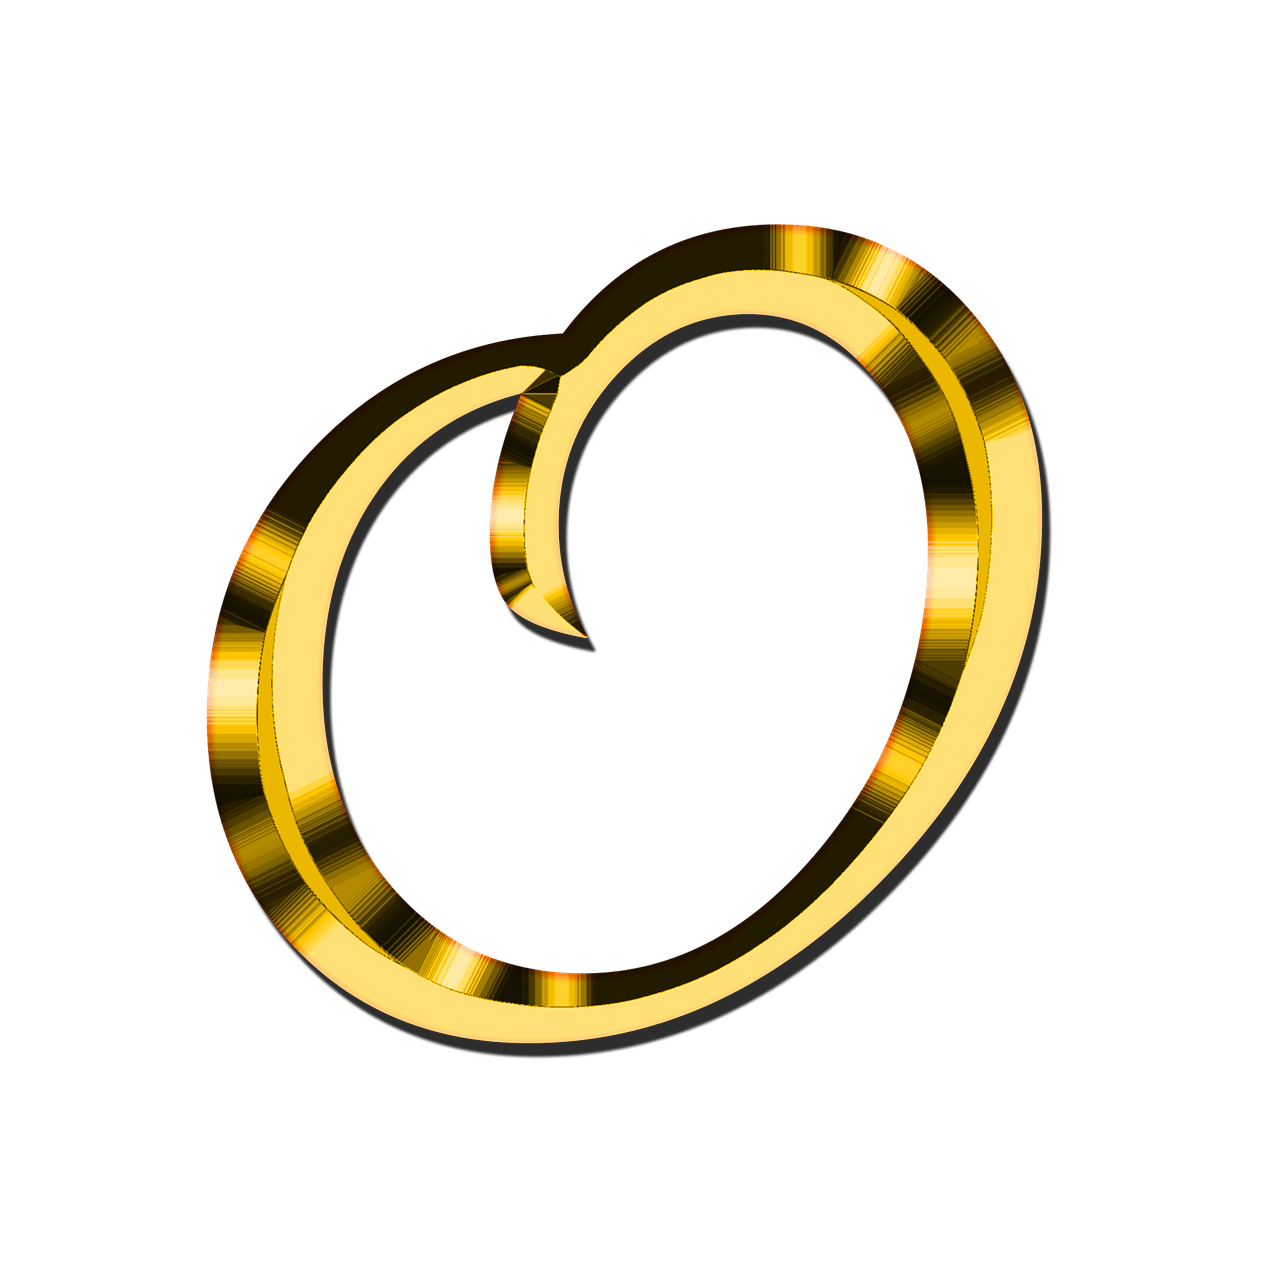 The Letter O Download from assets.stickpng.com